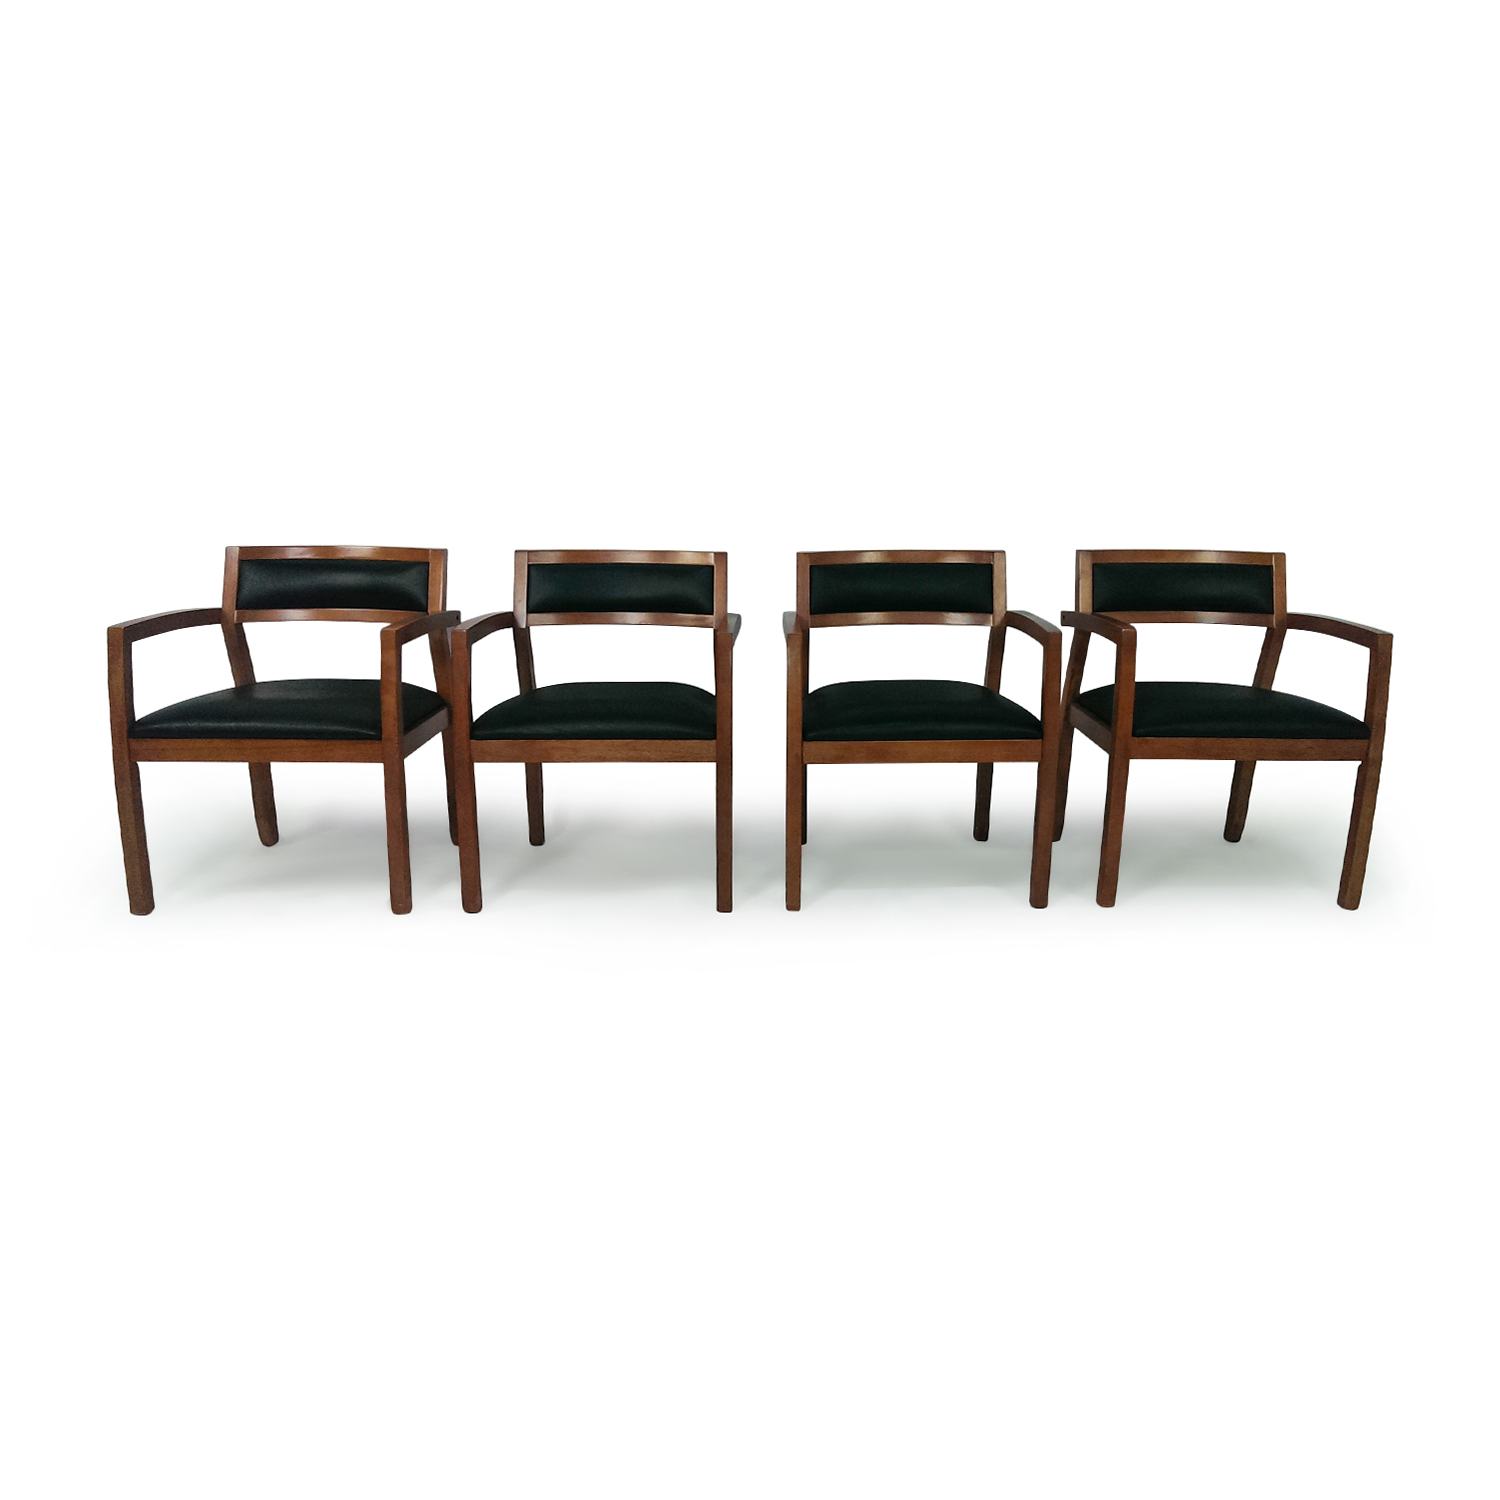 Set of 4 Office Chairs / Dining Chairs